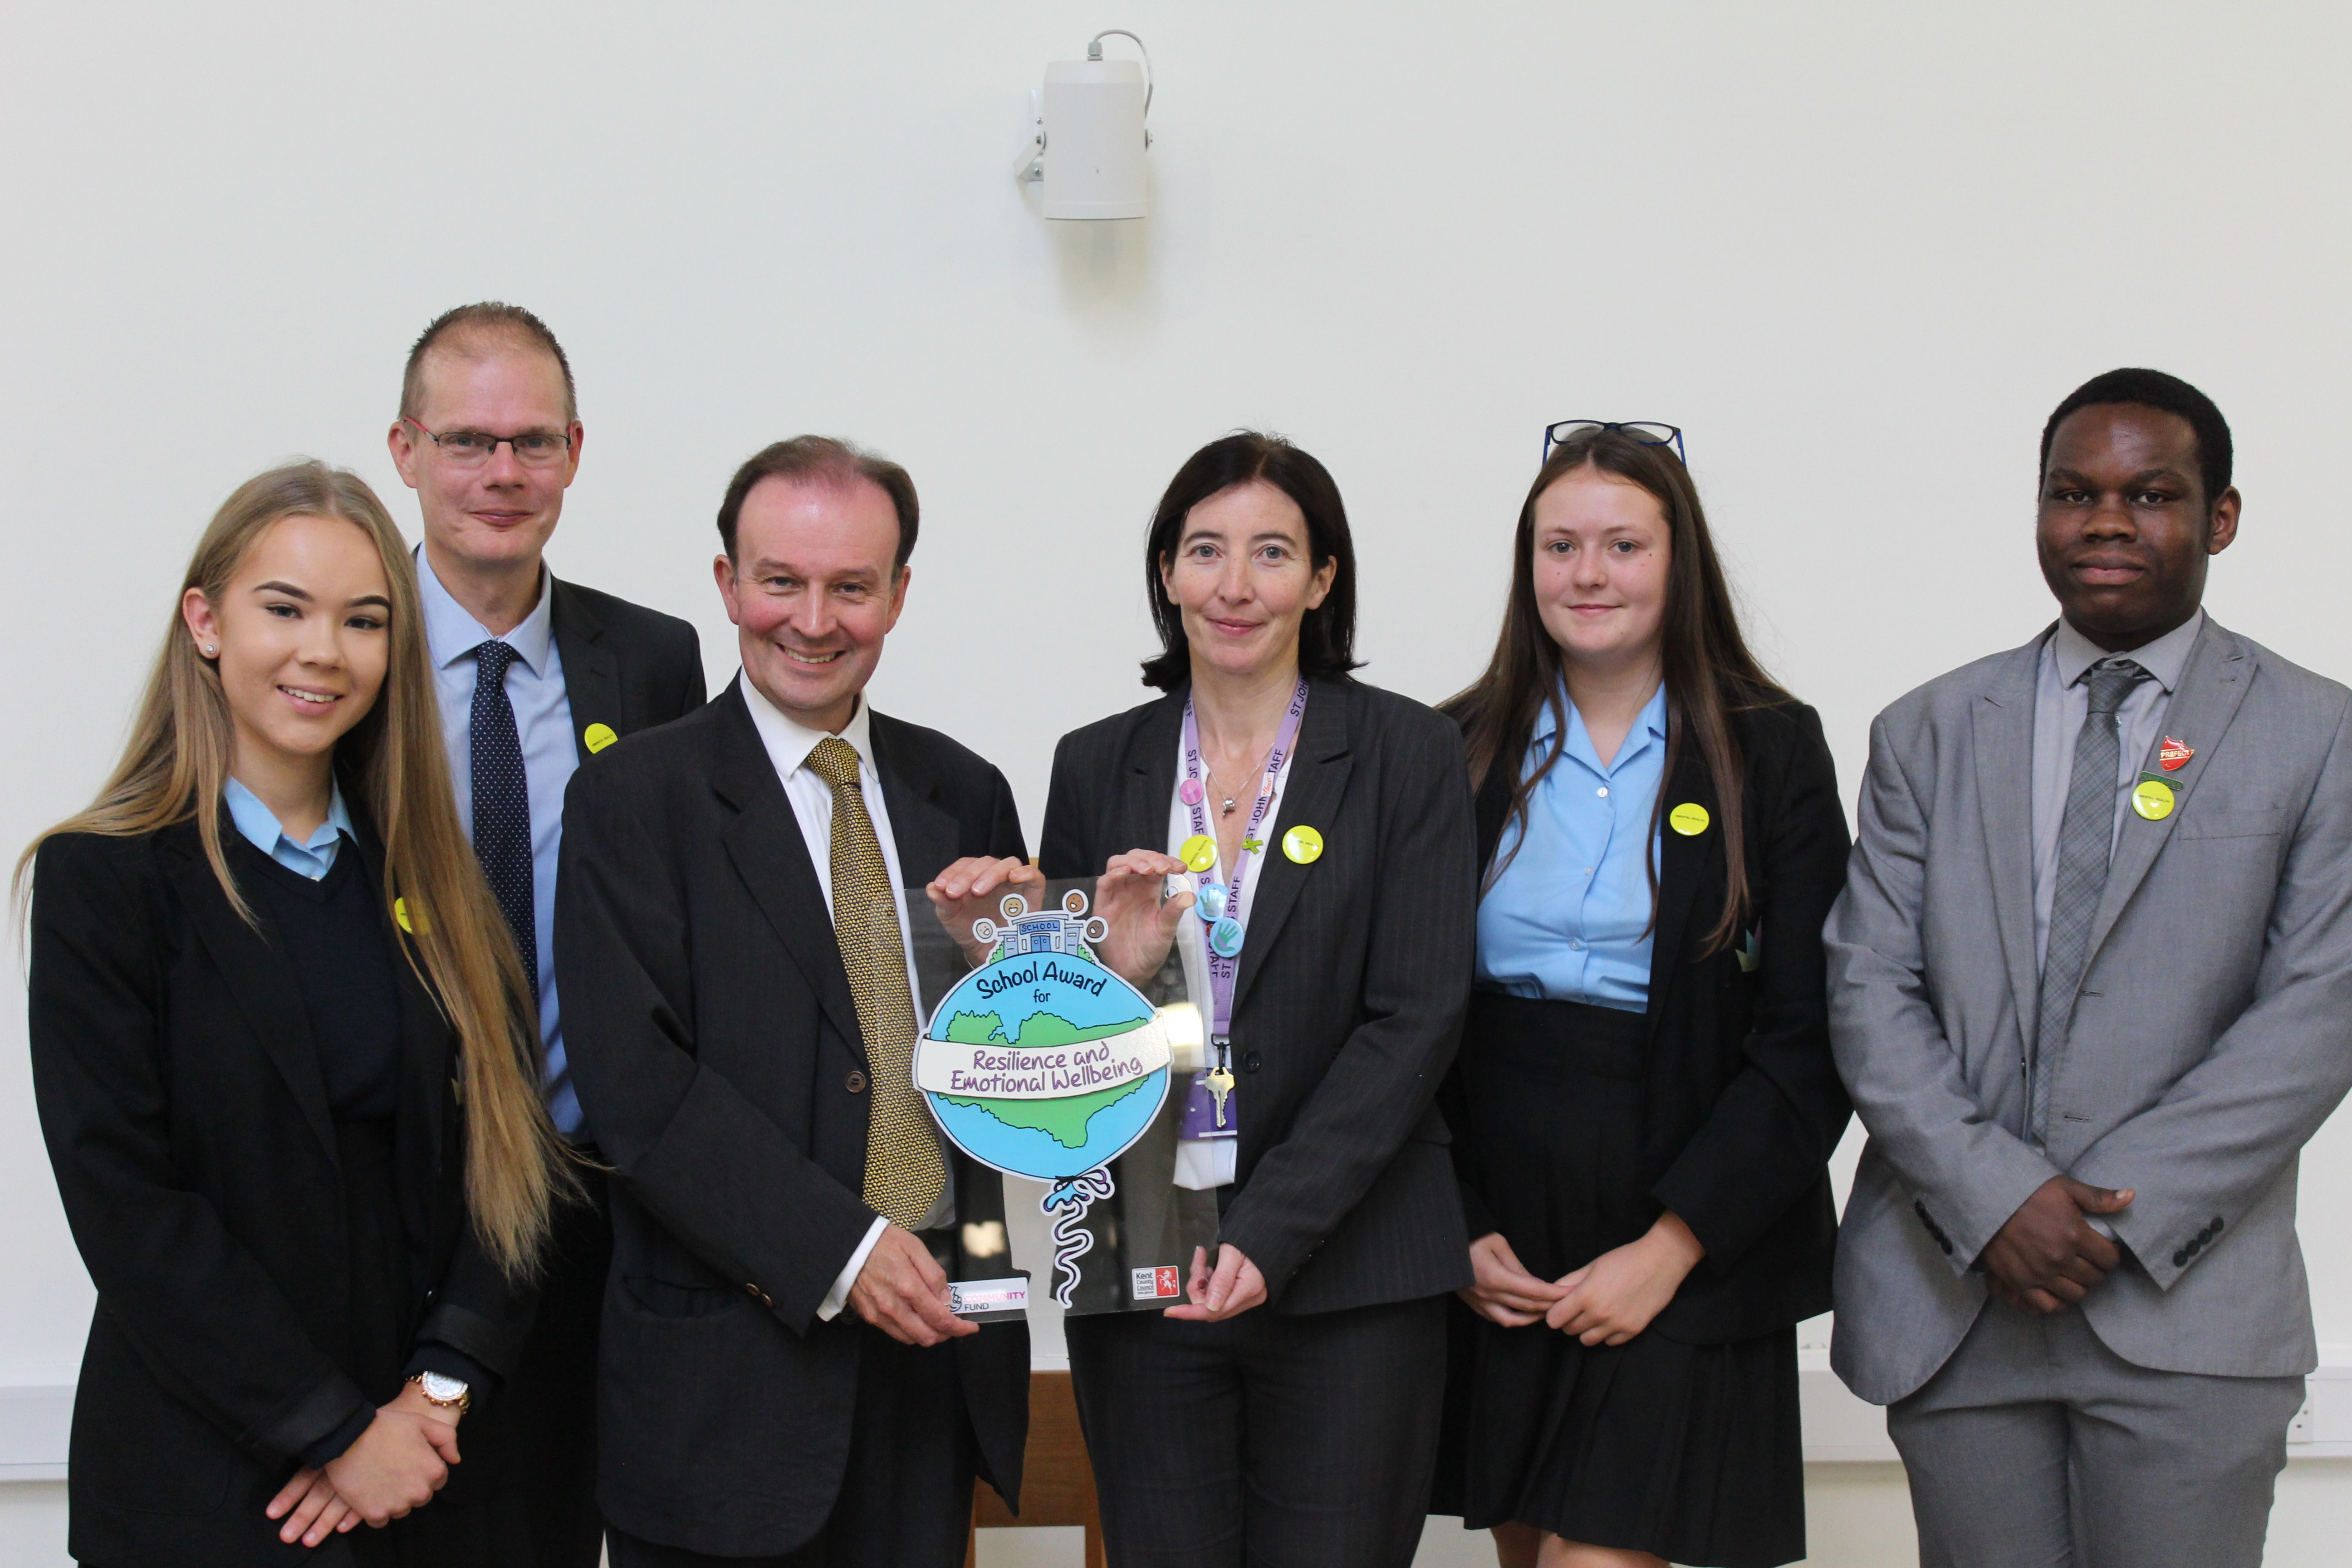 Third school receives Kent School Award for Resilience and Emotional Wellbeing